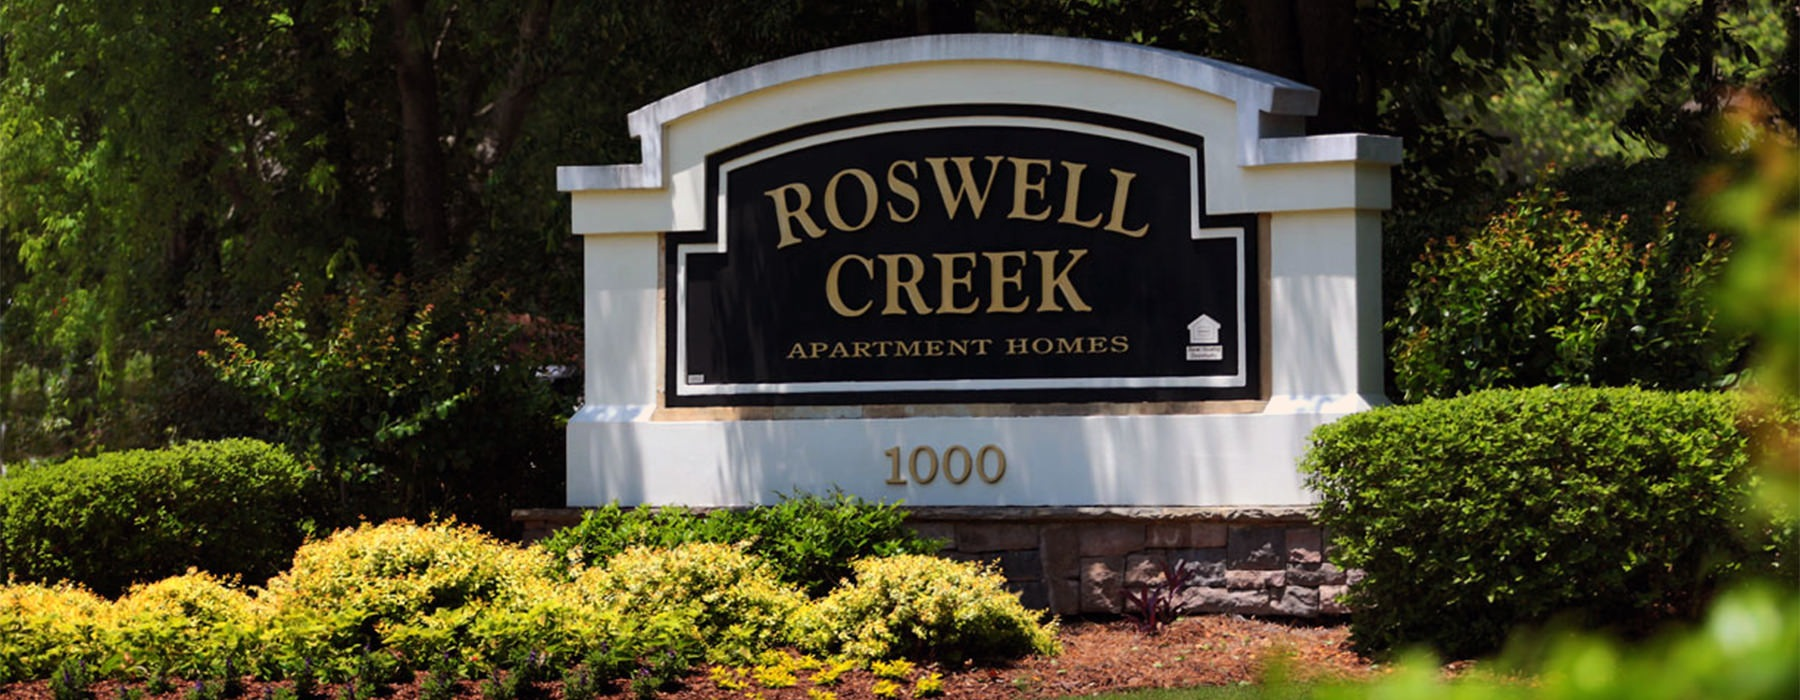 Roswell Creek Entrance sign with beautiful landscaping